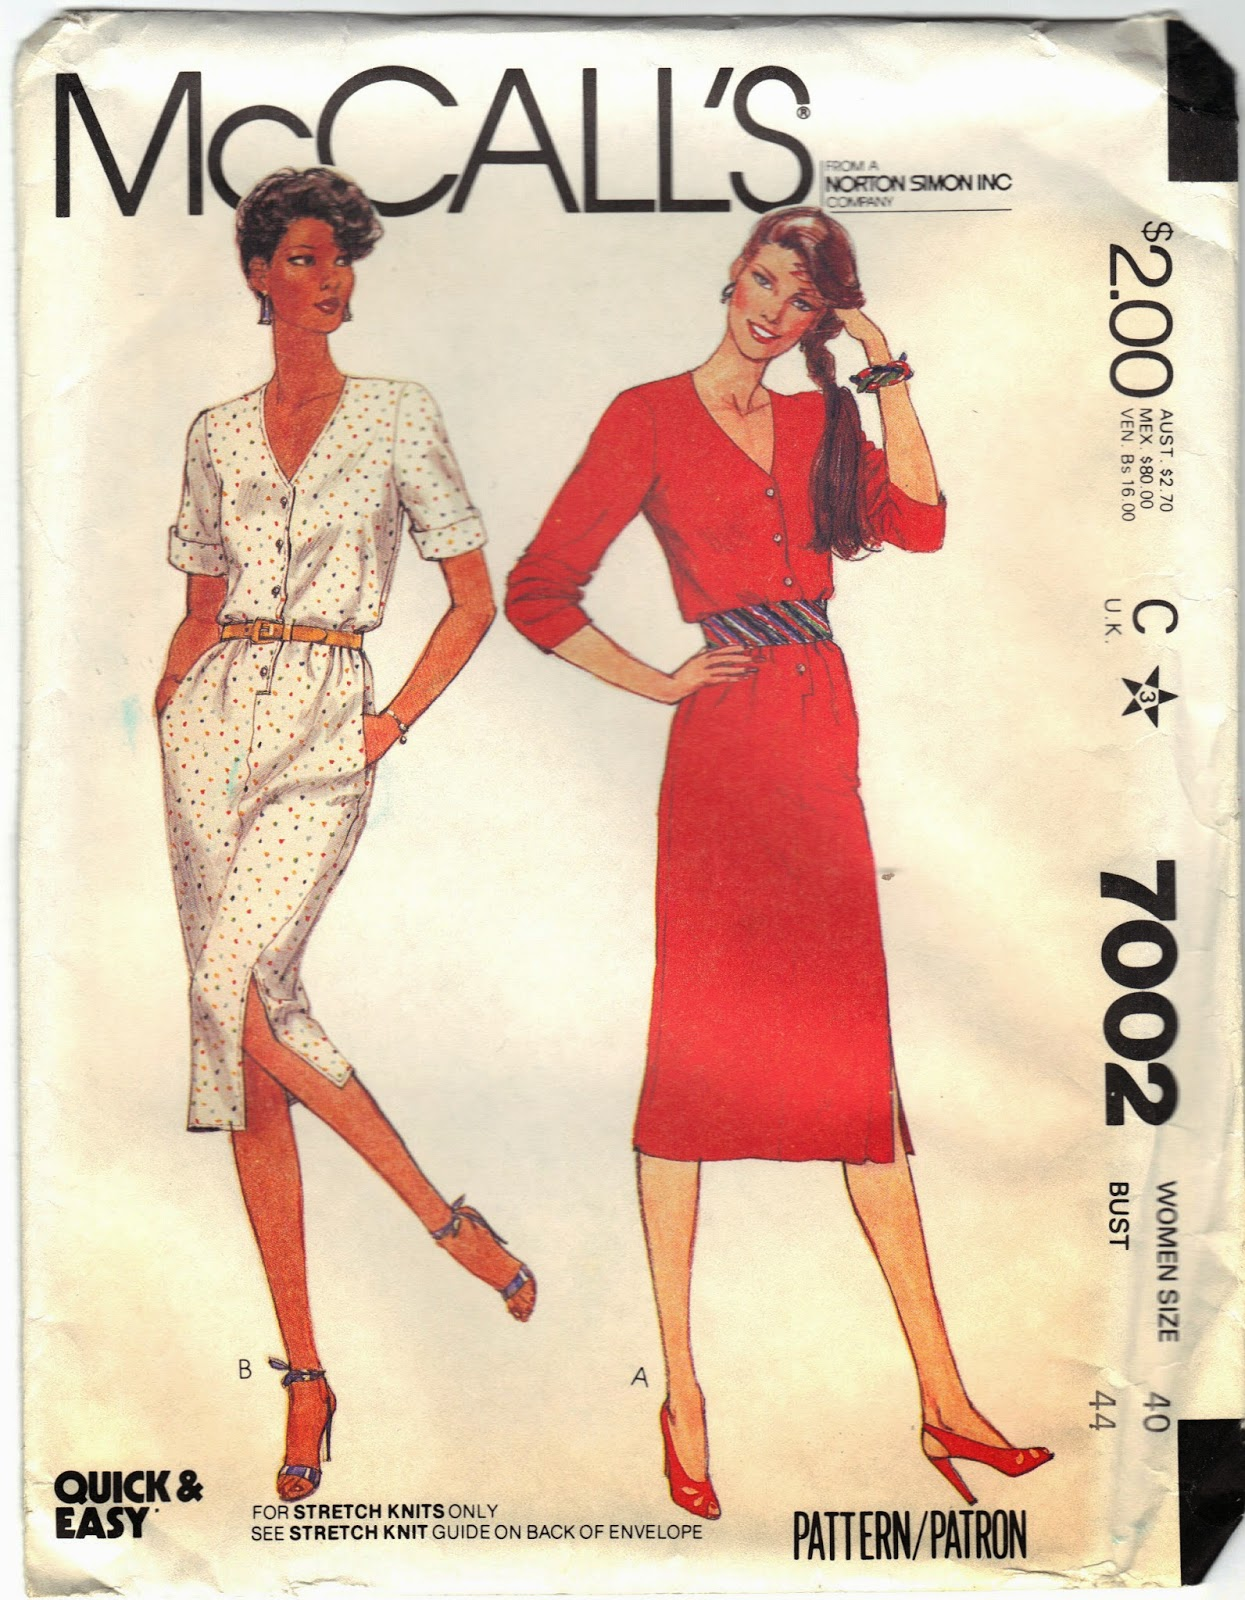 https://www.etsy.com/listing/189291828/mccalls-7002-pattern-womens-dress-size